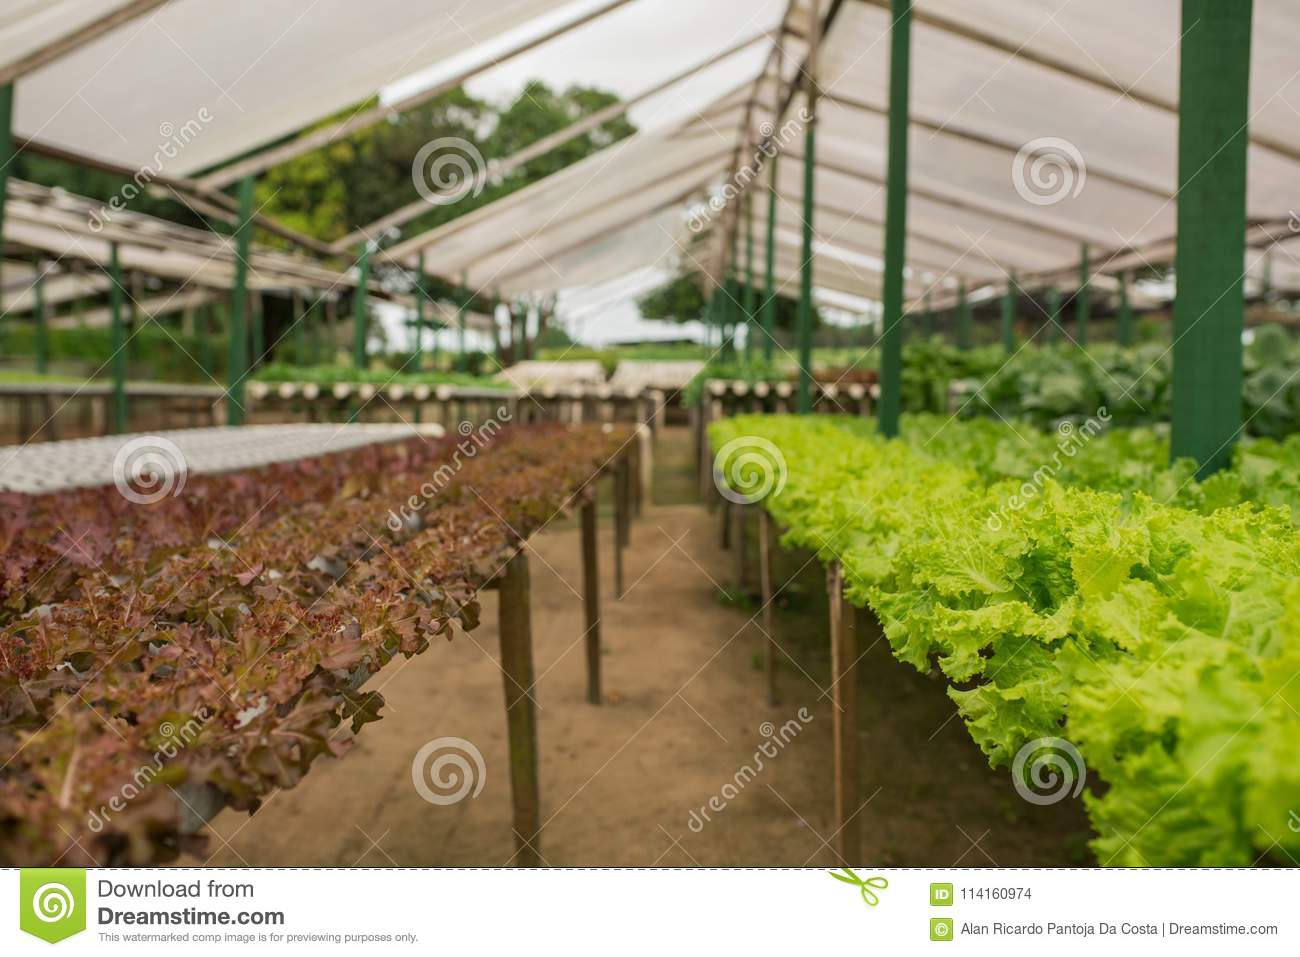 Organic Vegetable Gardening In The Greenhouse Stock Photo - Image of ...